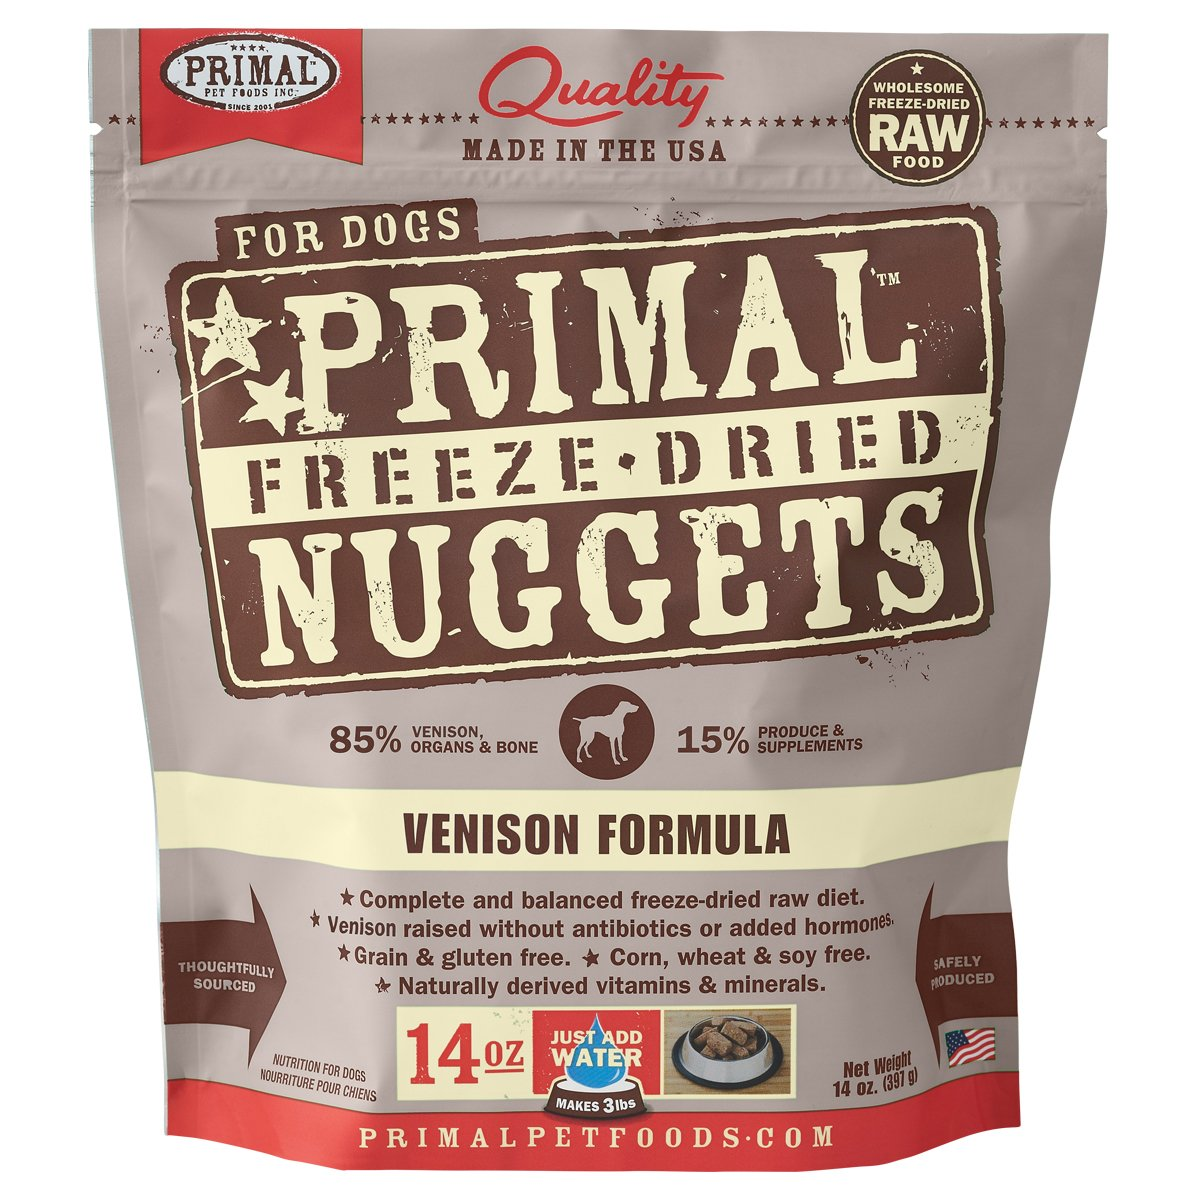 5. Primal Venison Nuggets Grain-Free Raw Freeze-Dried Dog Food